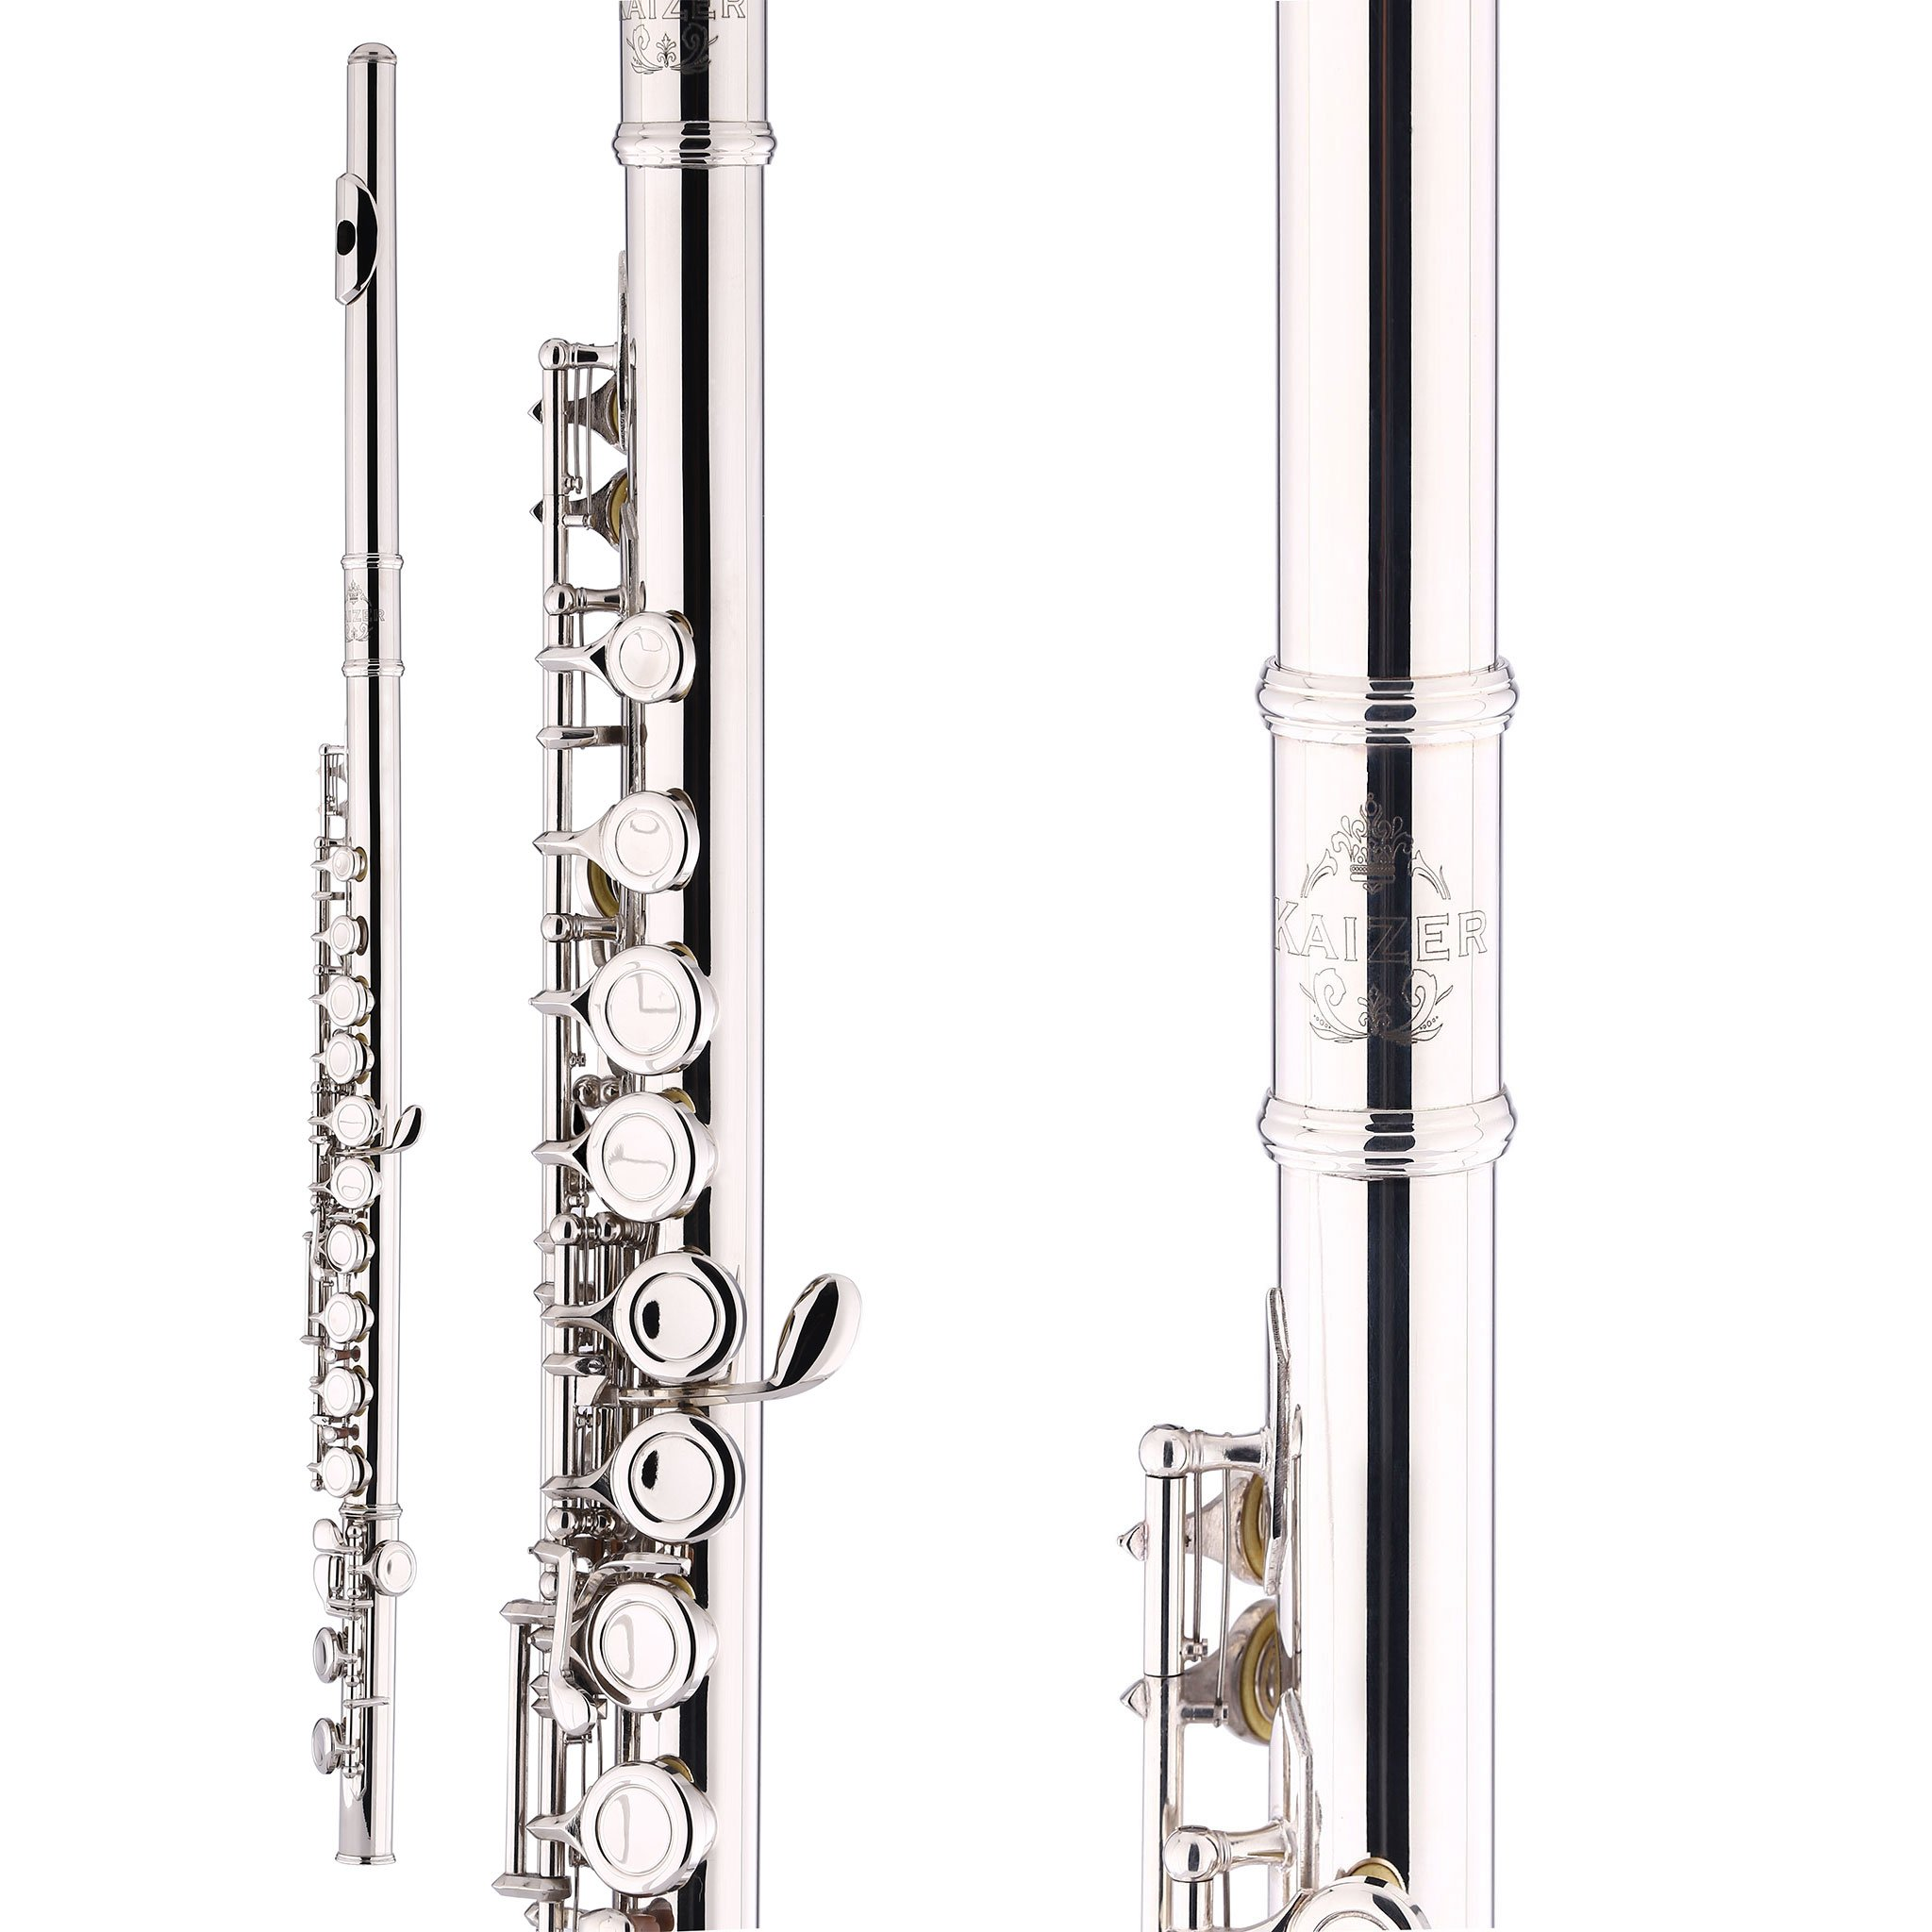 Kaizer Flute C Key 1000 Series Closed Hole Nickel Silver New 2018 Model Student Flute FLT-1500NK by Kaizer